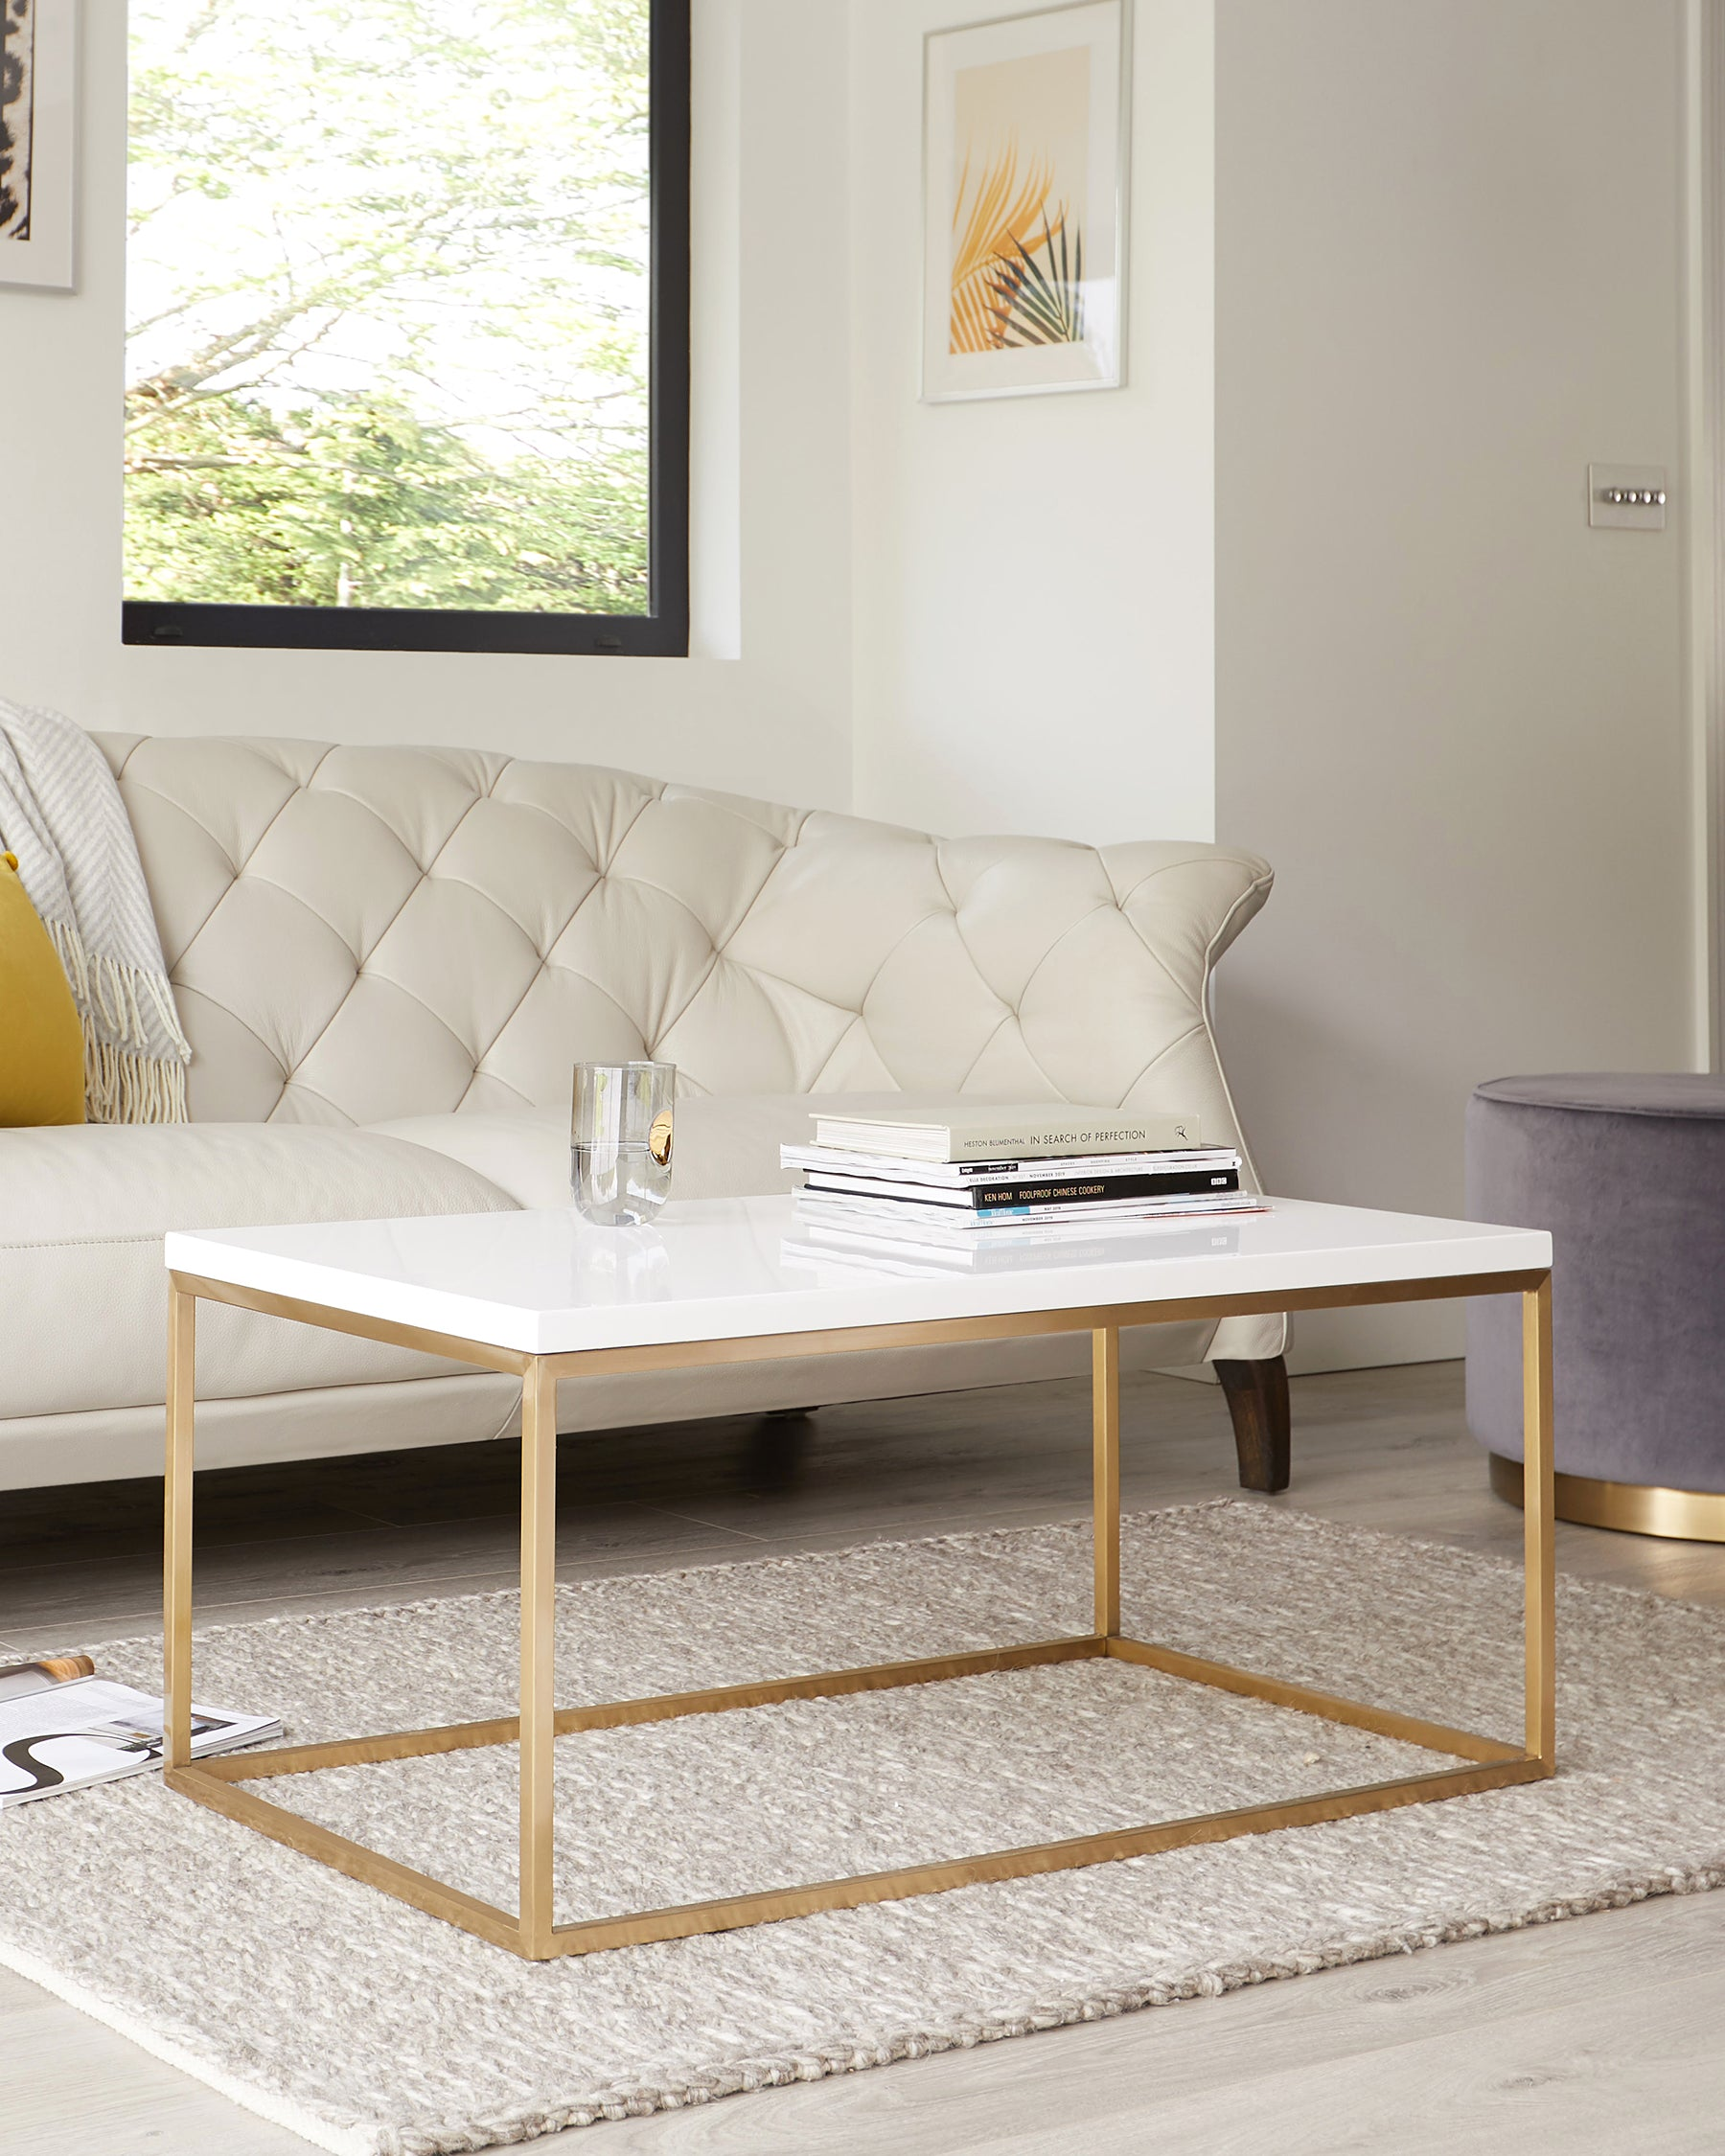 Acute White Gloss Coffee Table With Brass Base Danetti